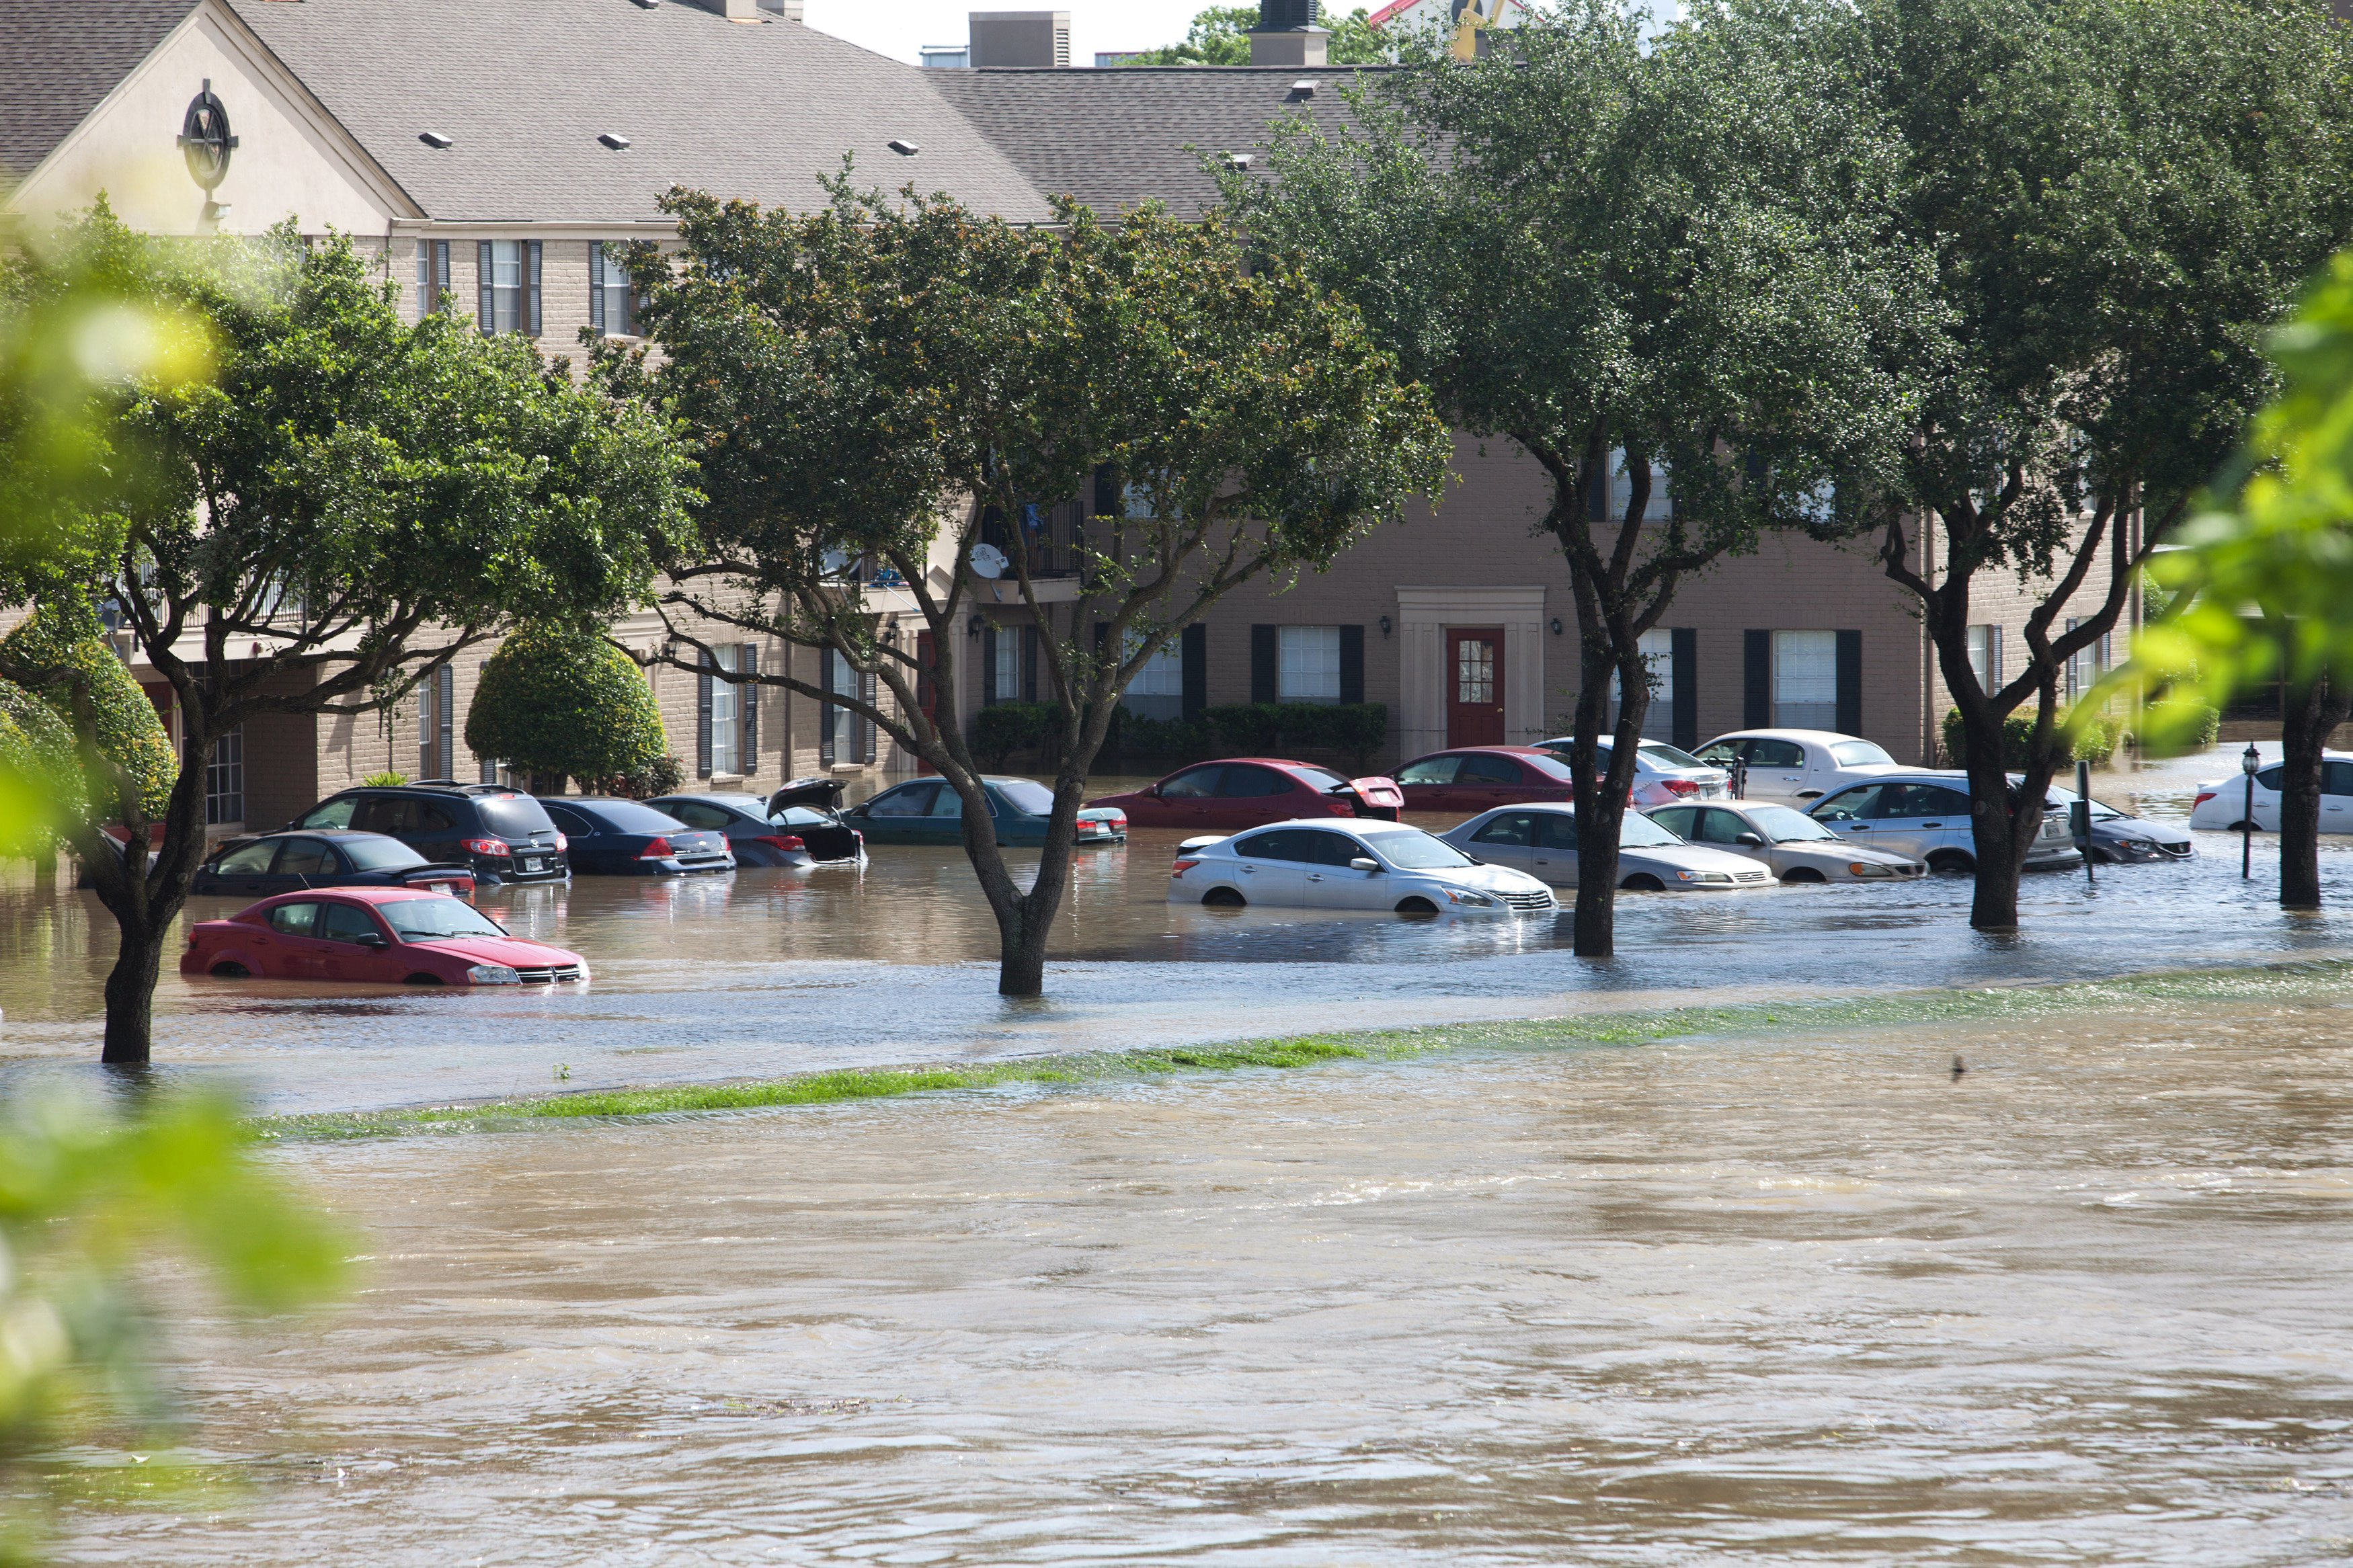 Floods, Storms Kill At Least 31 In Texas, Oklahoma And ...